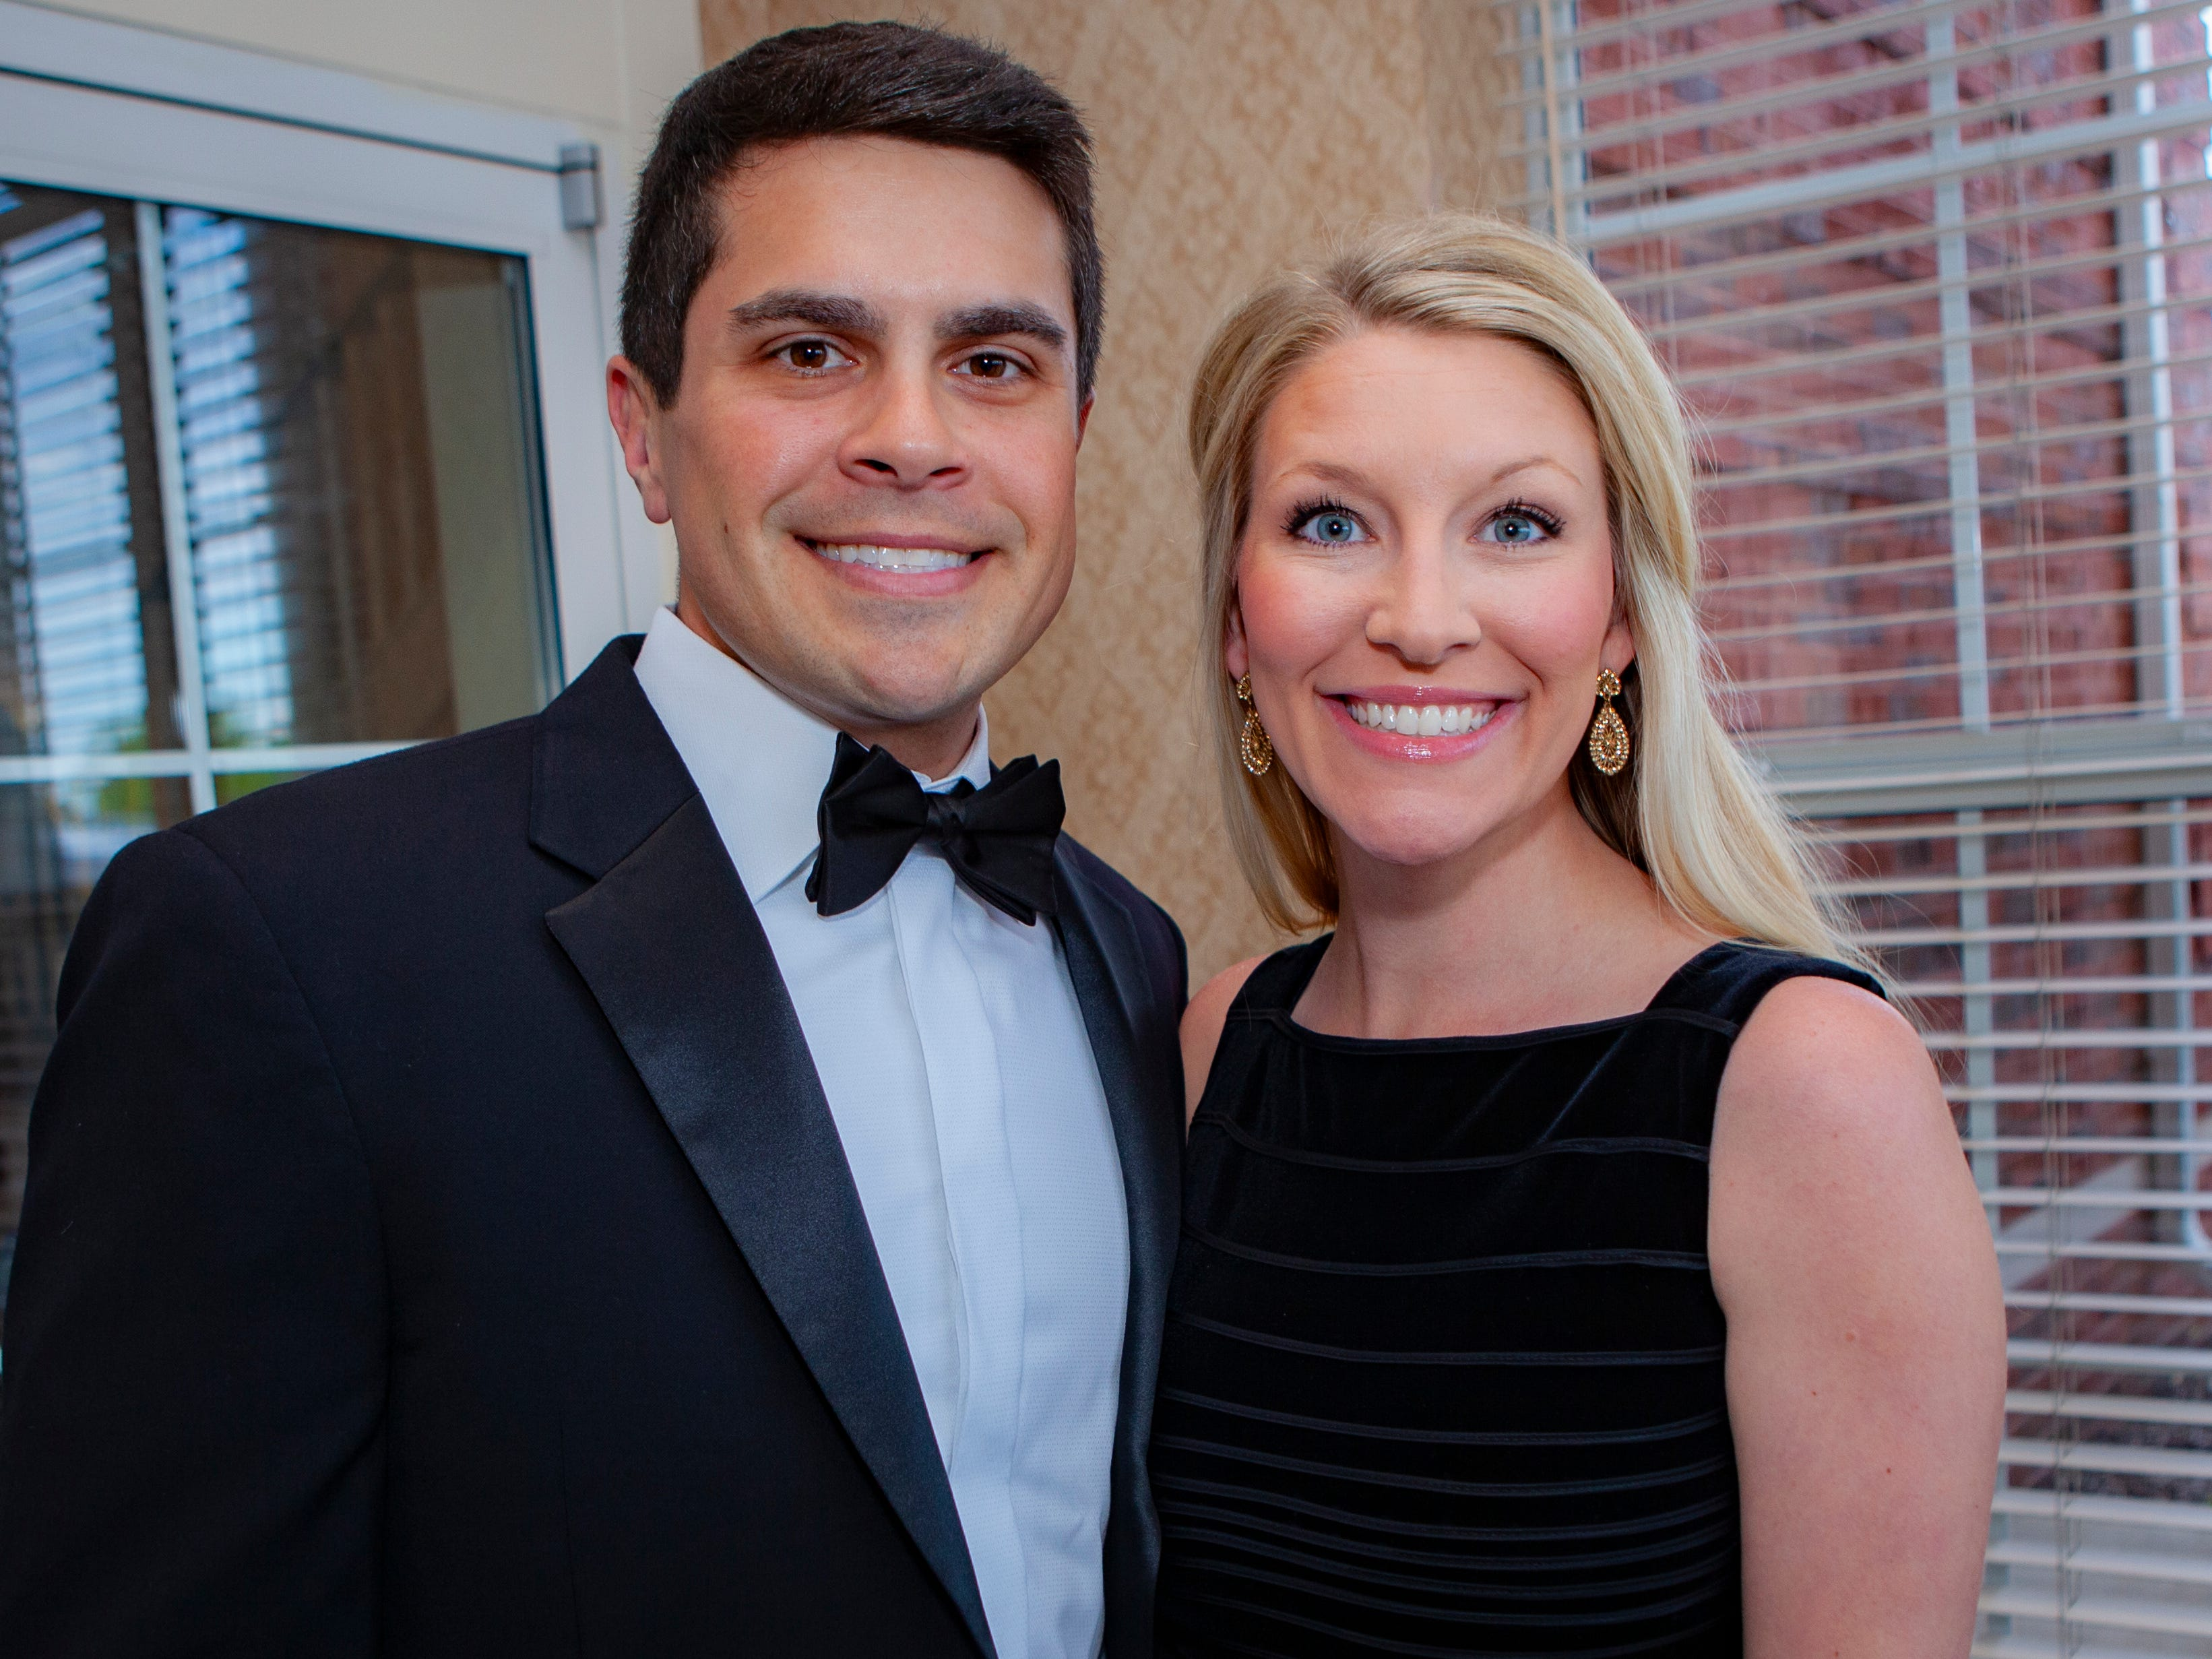 Aaron and Asheton Bertrand at the Charity Circle of Murfreesboro's 52nd Annual Duck Ball, held Saturday, April 27, 2019.